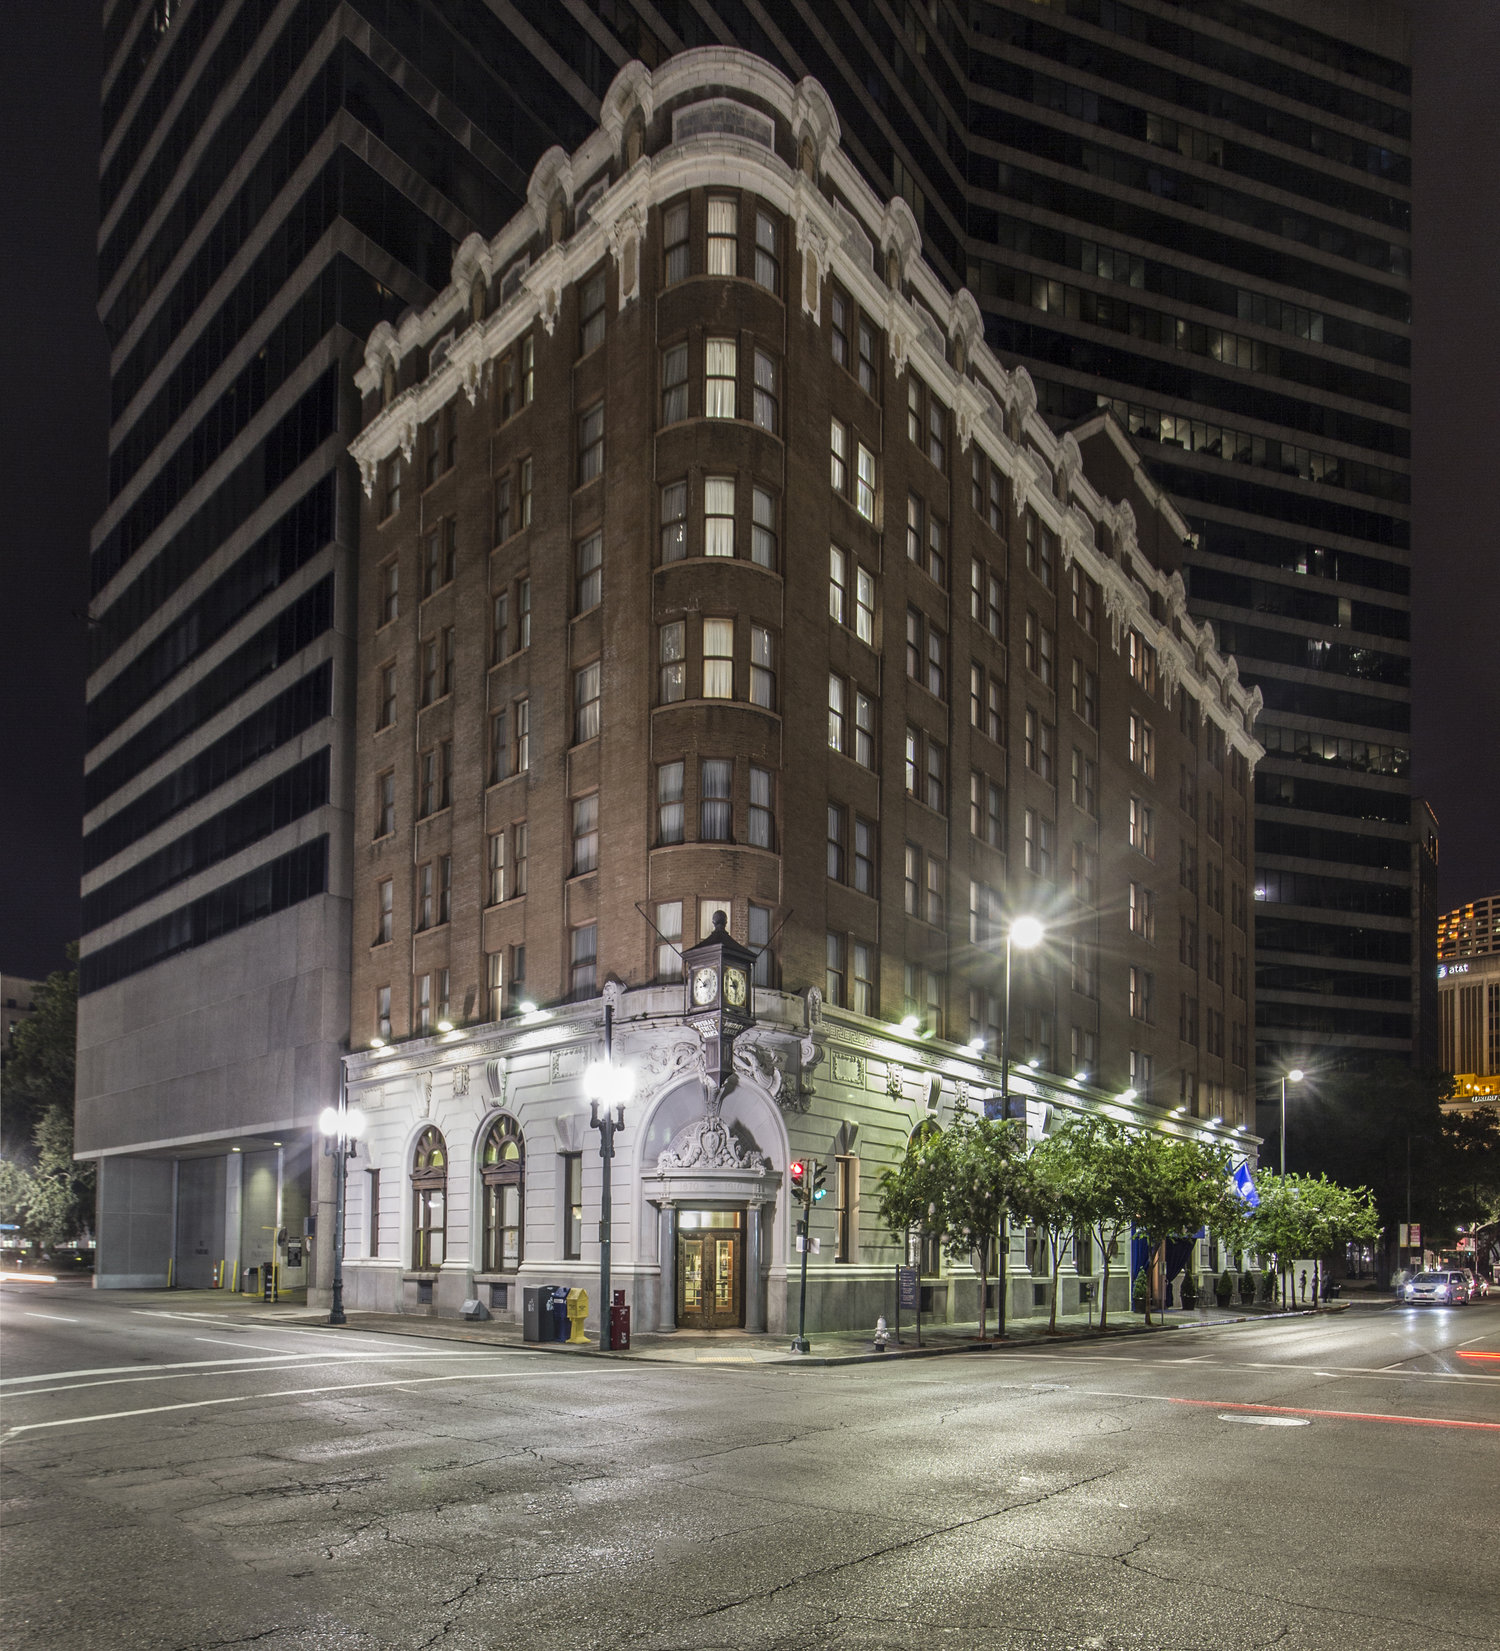 """""""Night"""" shot taken at 4am to eliminate parked cars. Strong architectural style highlighted with forced perspective. By darkening nearby buildings, property stands out among competing surroundings."""